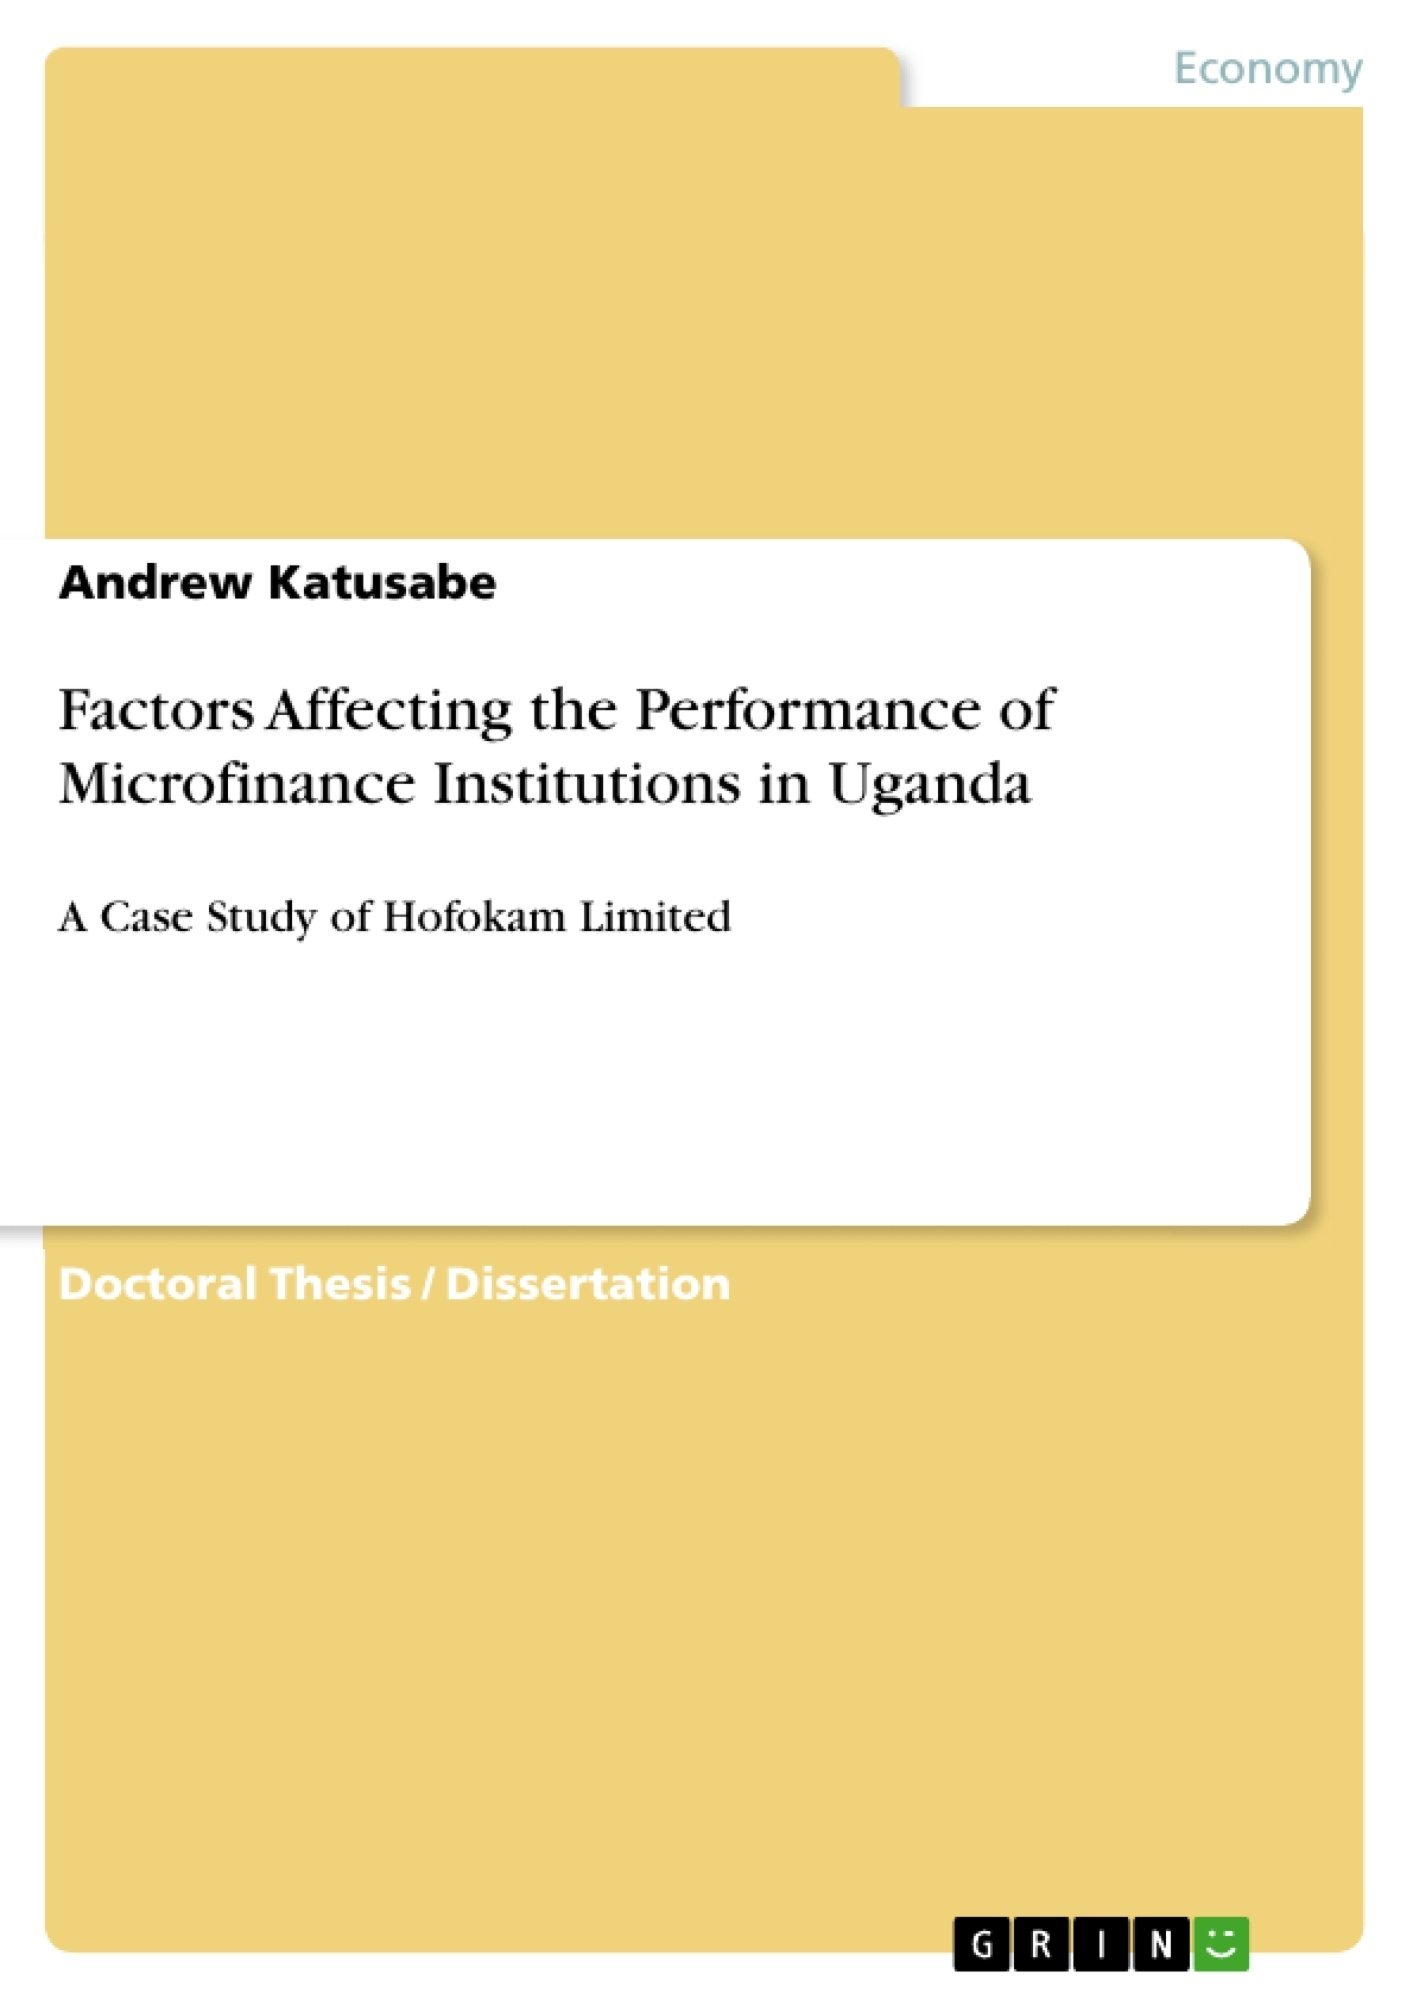 role of microfinance in uplifting womens status